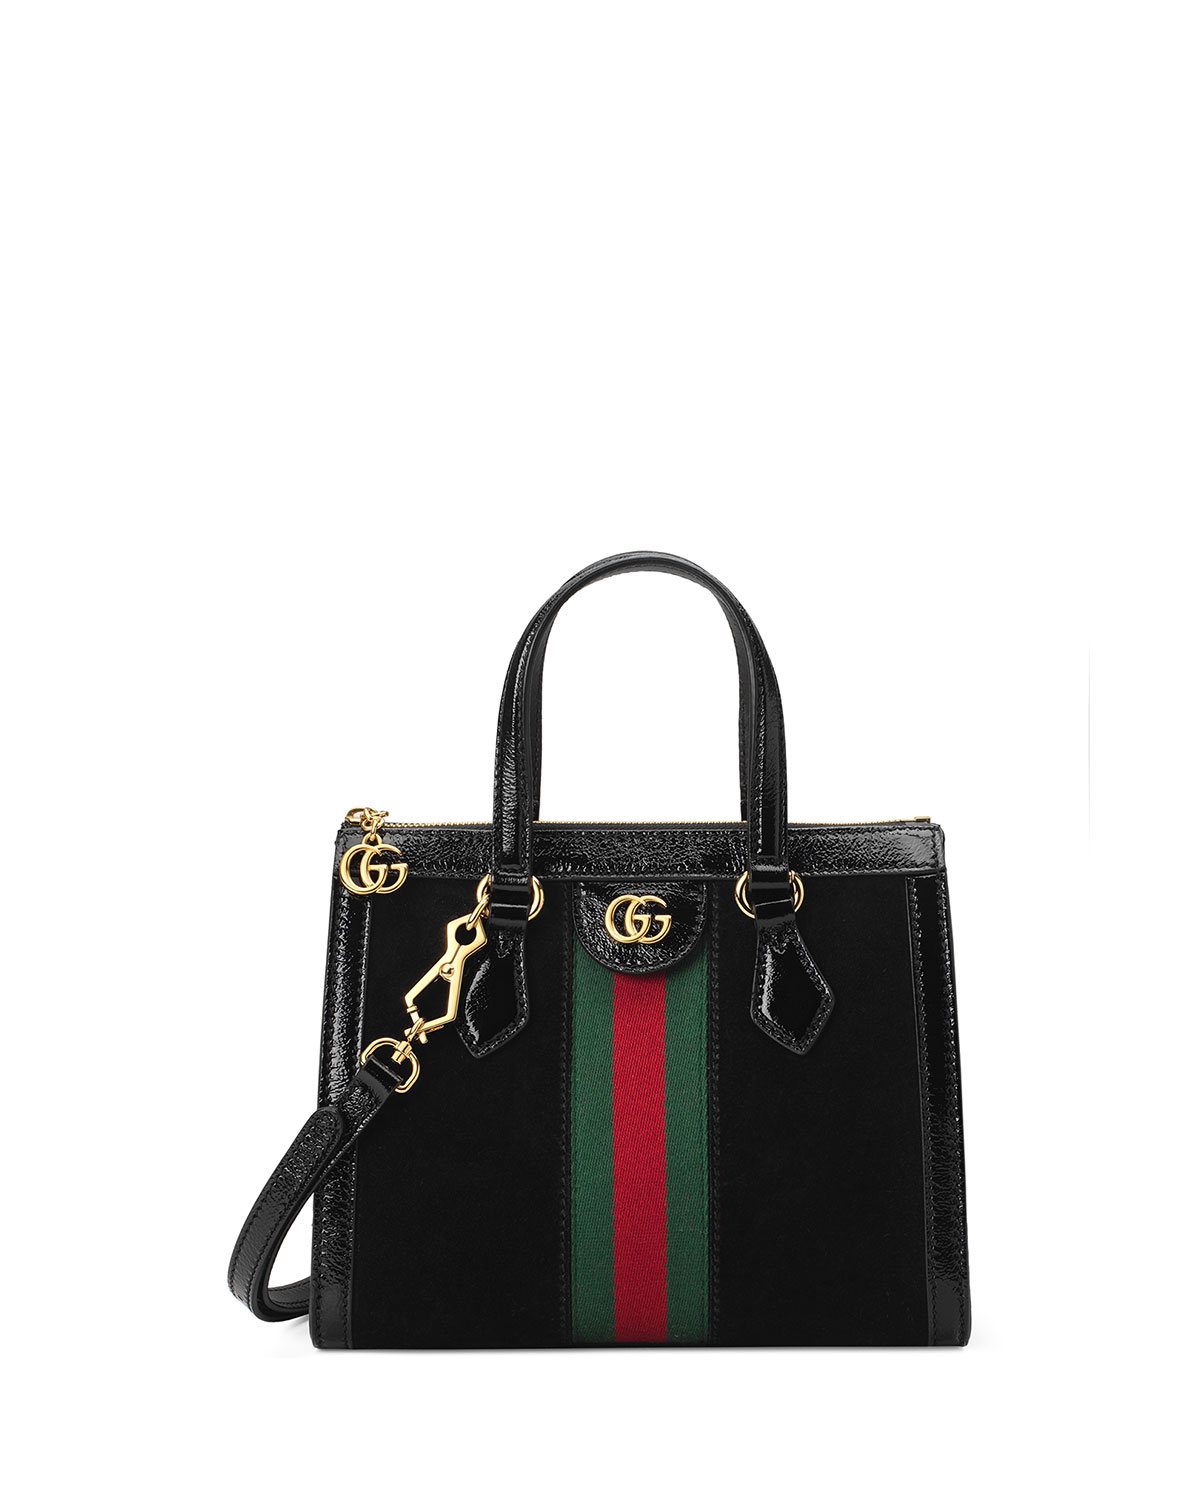 ad77172cb259 Gucci Ophidia Small Suede Tote Bag | Neiman Marcus